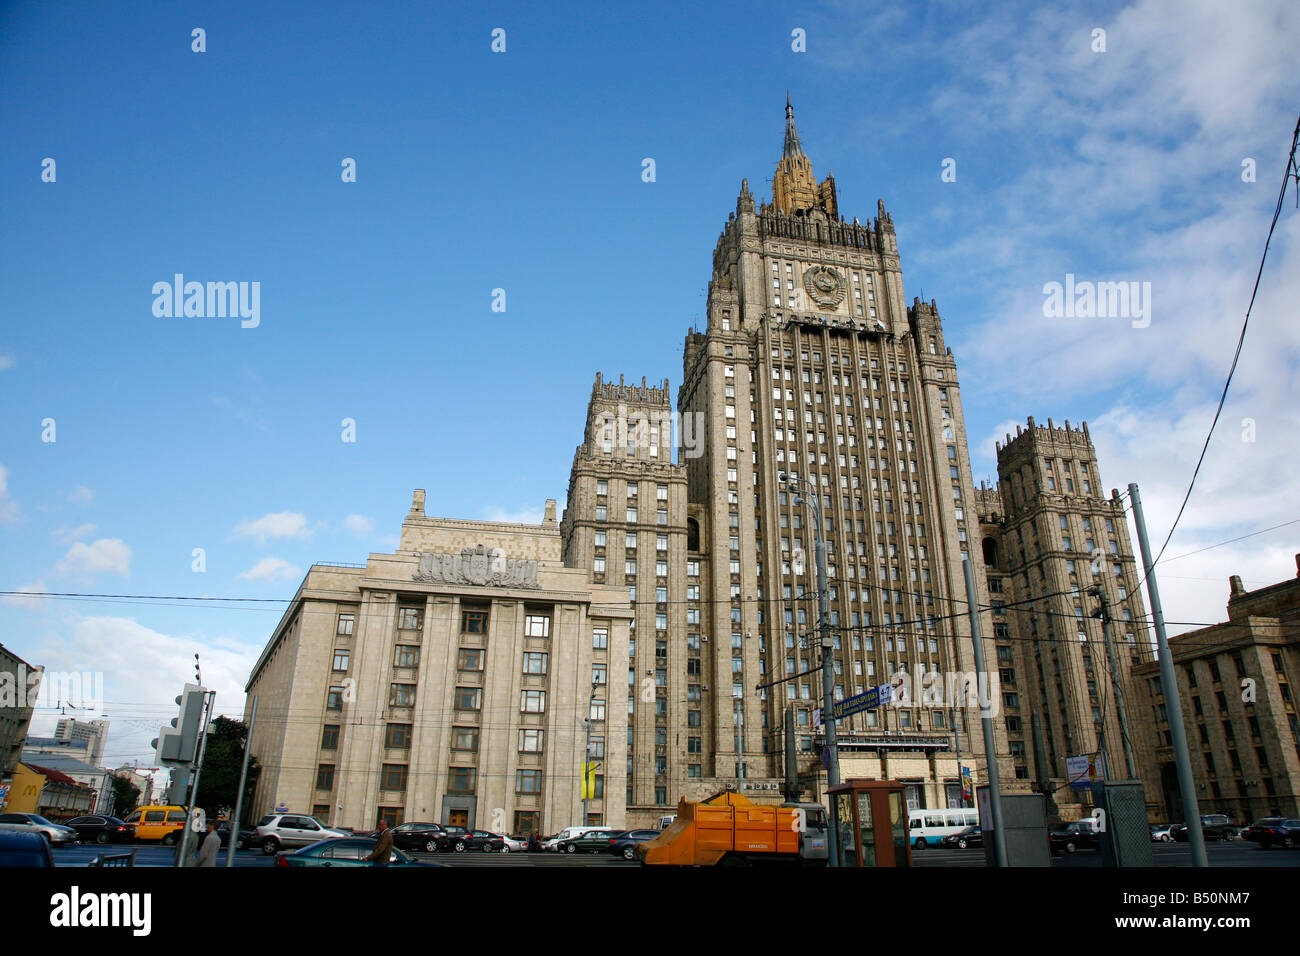 Sep 2008 The Stalinist forigen Affairs Ministry building of Seven Sisters which are seven Stalinist skyscrapers - Stock Image